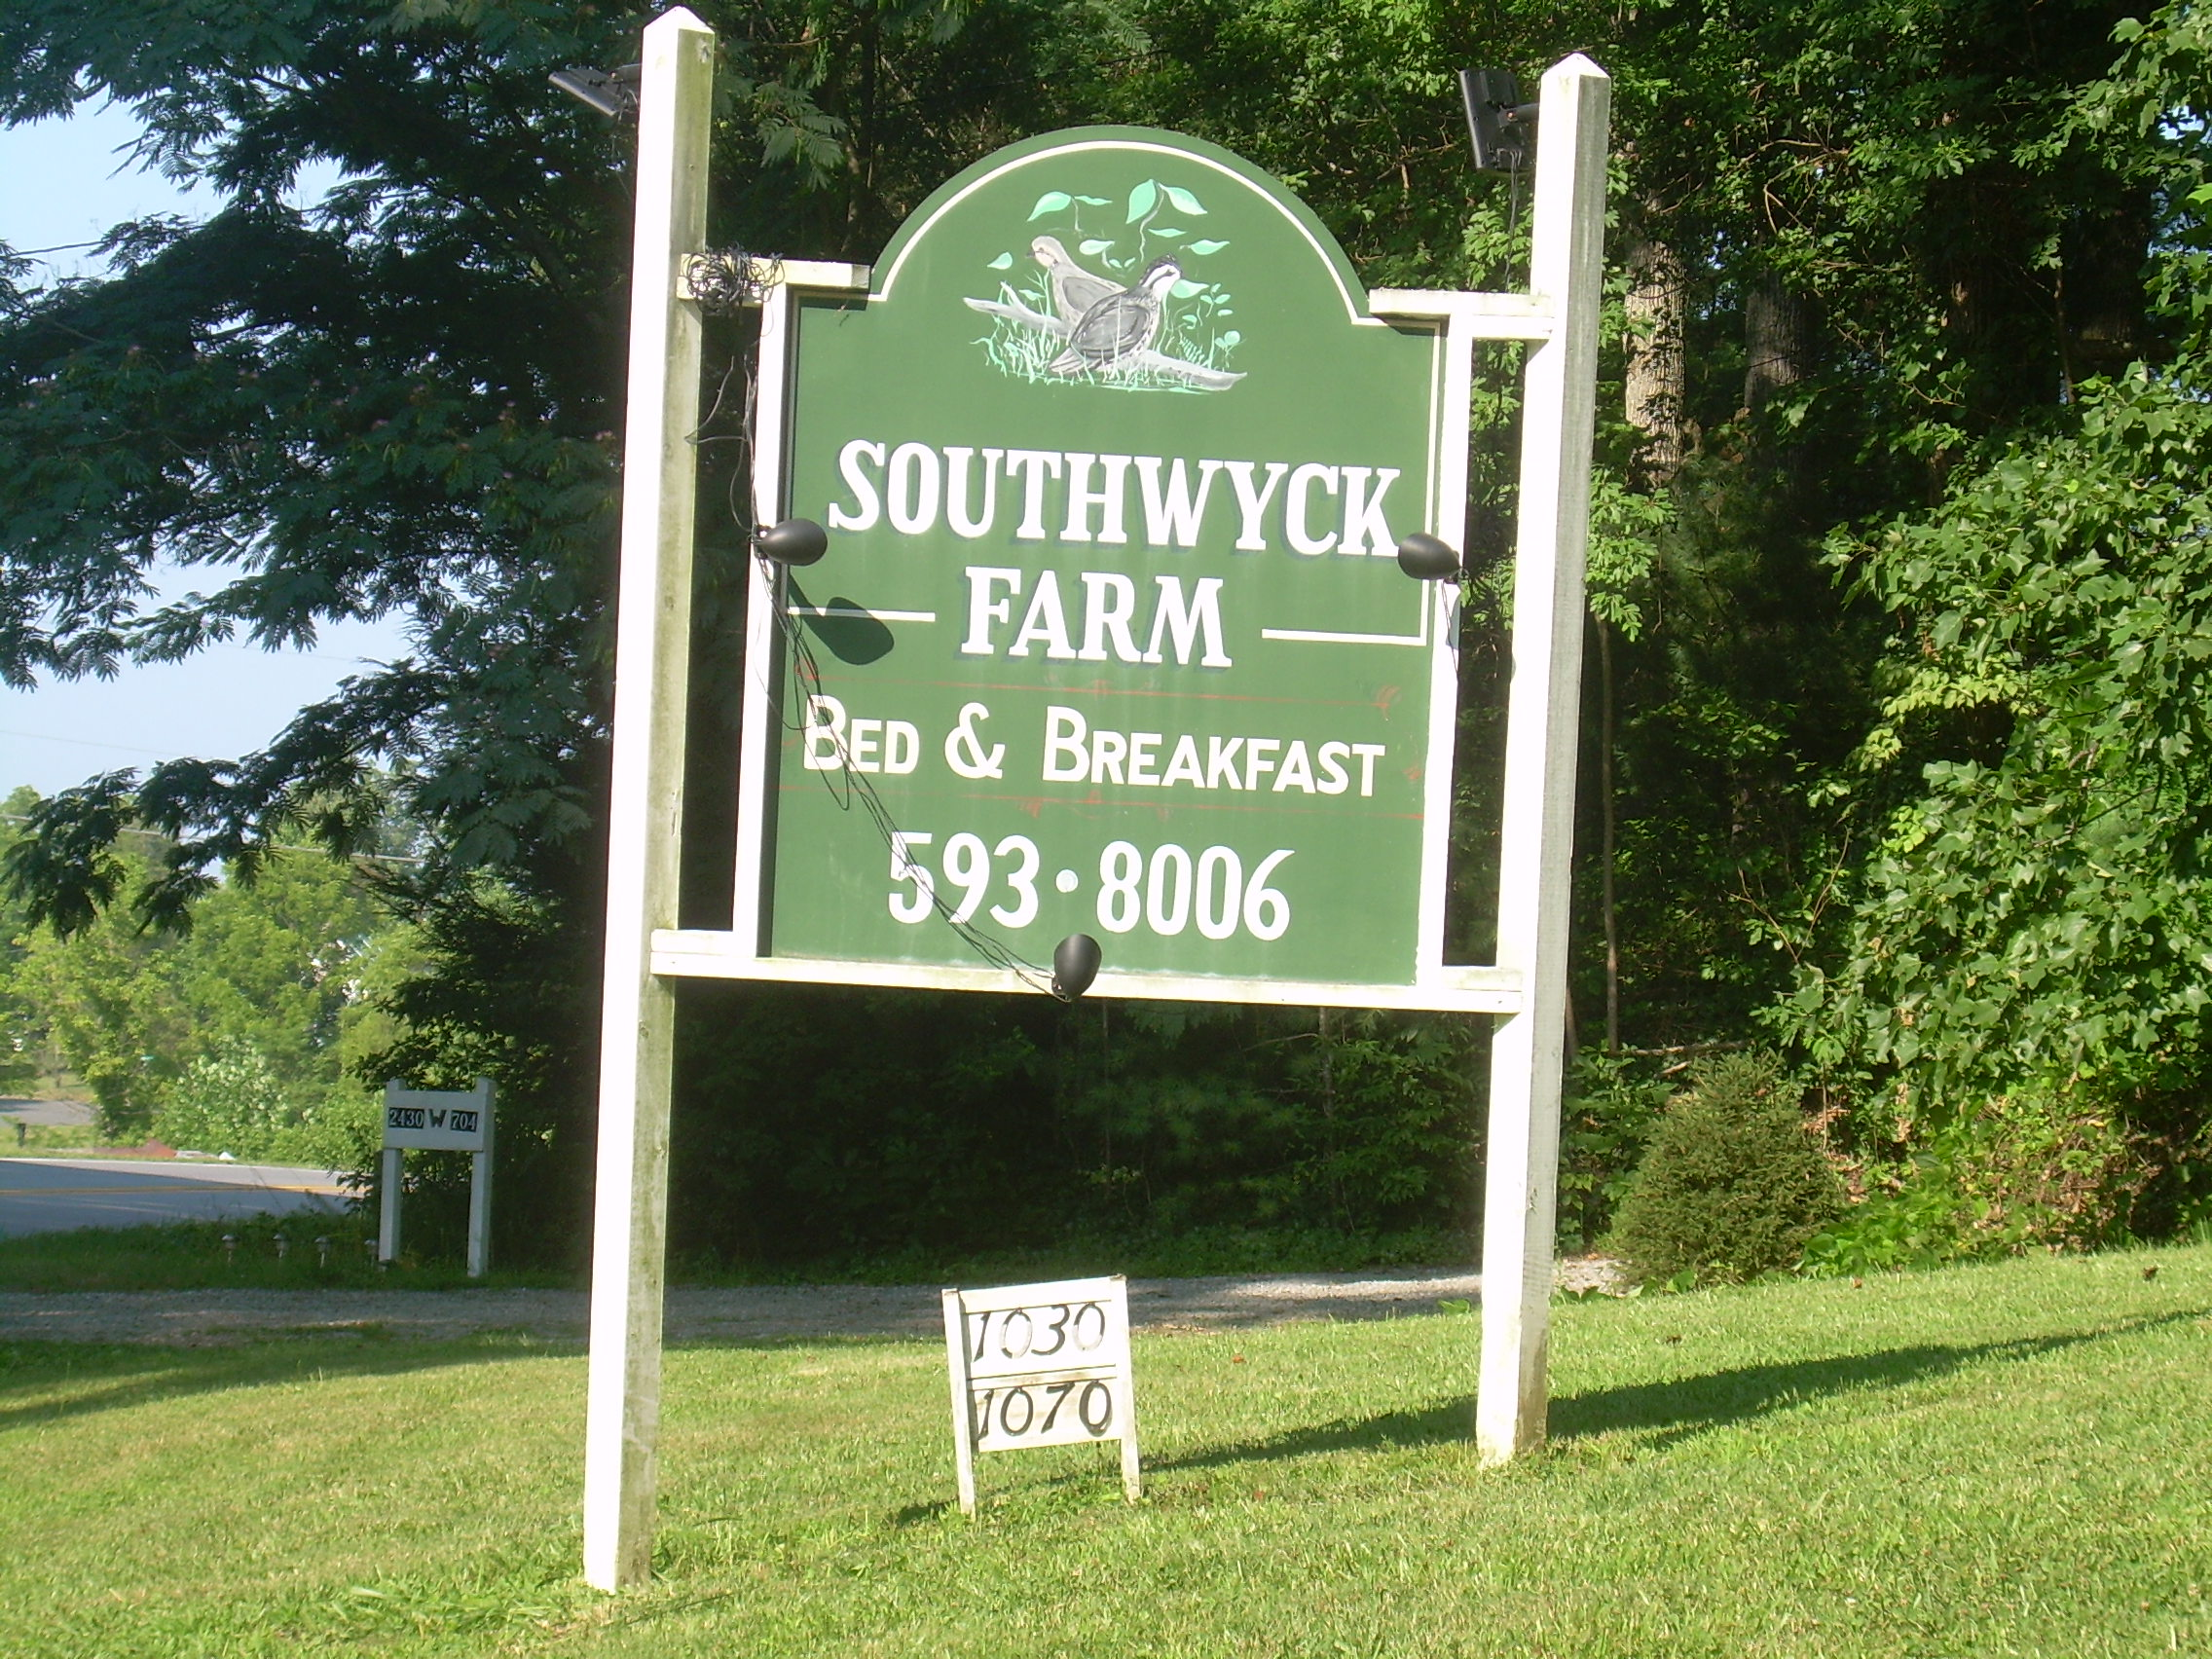 Southwyck Farm Bed and Breakfast